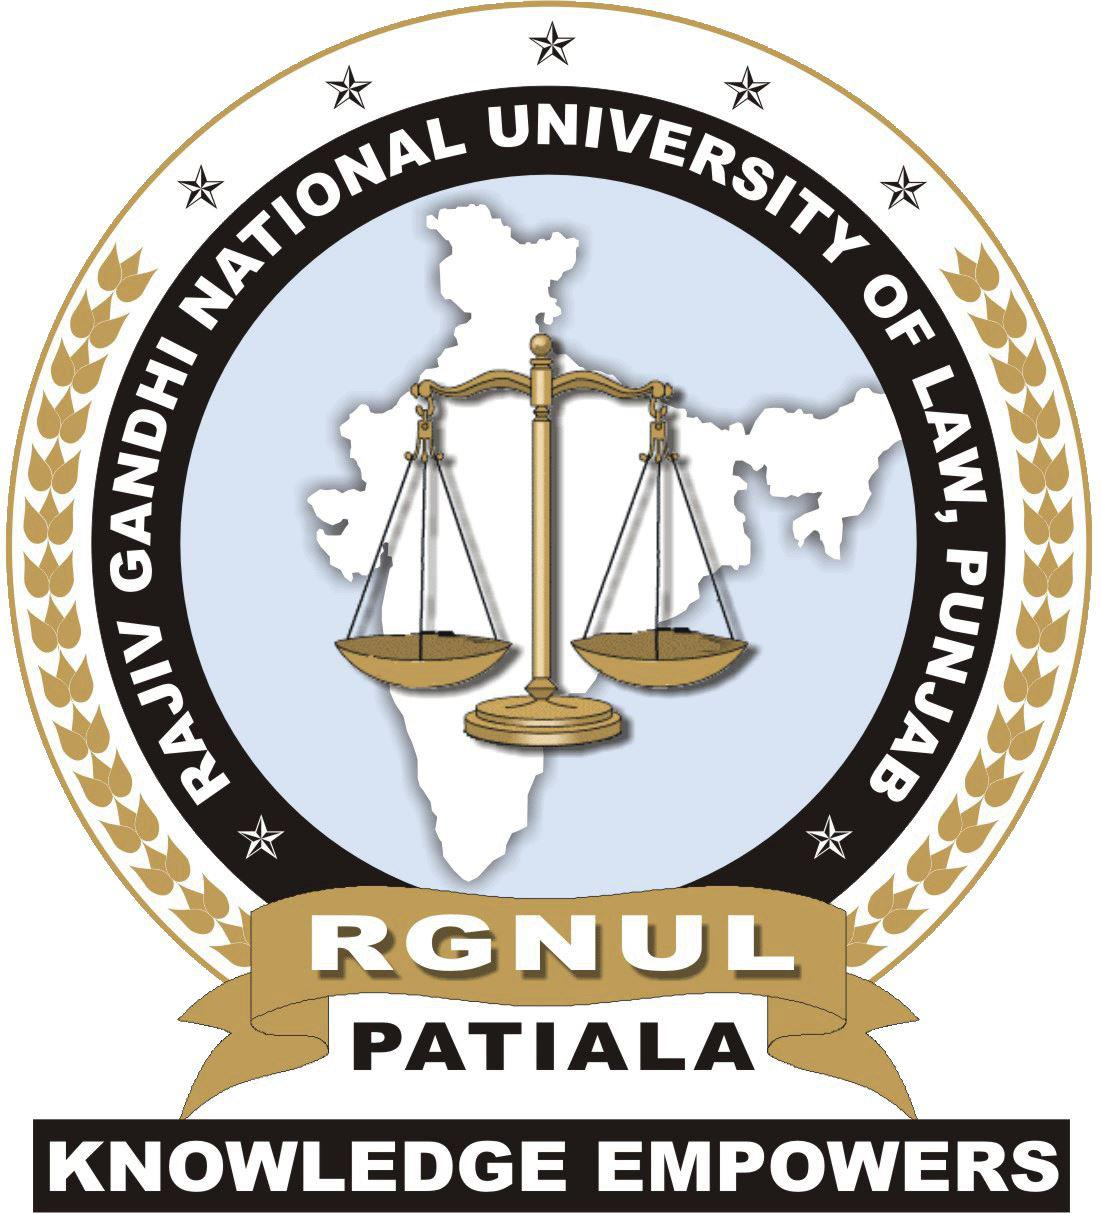 RGNUL's Parliamentary Debate: AGAHI'19 [Patiala, Oct 4-6]: Register by Sep 26, Prizes Worth Rs. 77K